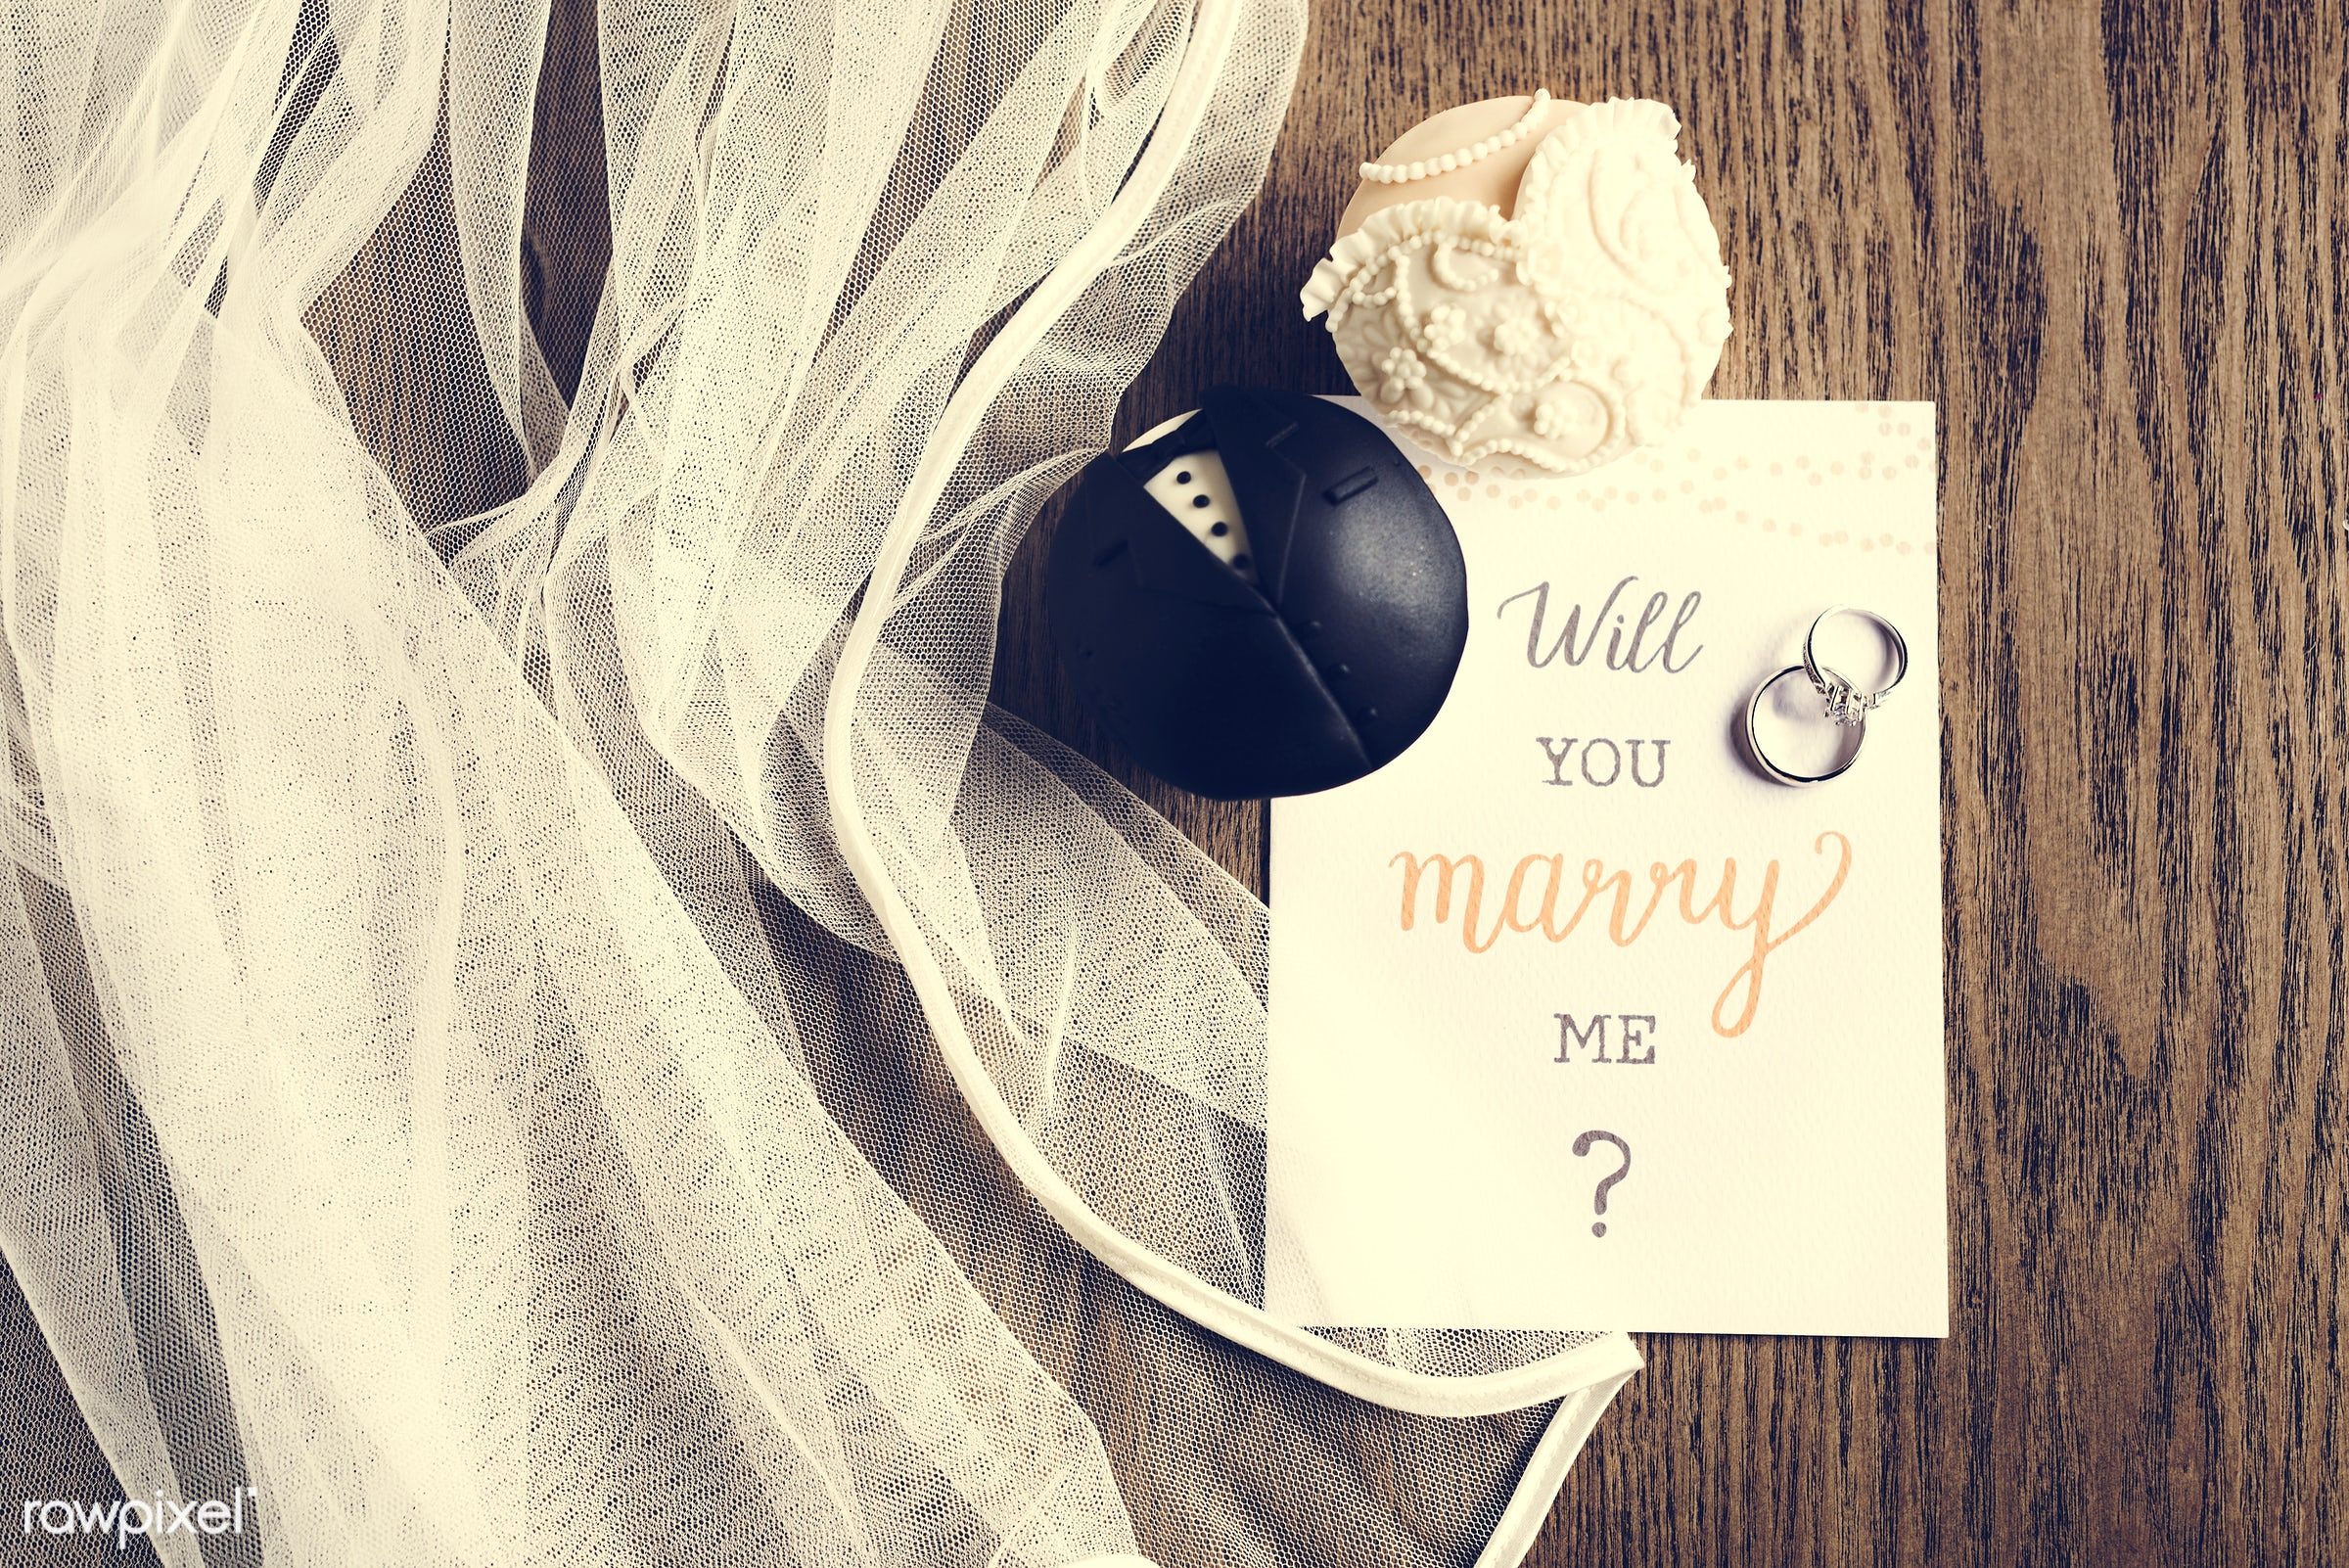 expression, nobody, smitten, together, love, cherish, propose, intimate, lifestyle, card, gown, rings, marry, cake, asking,...